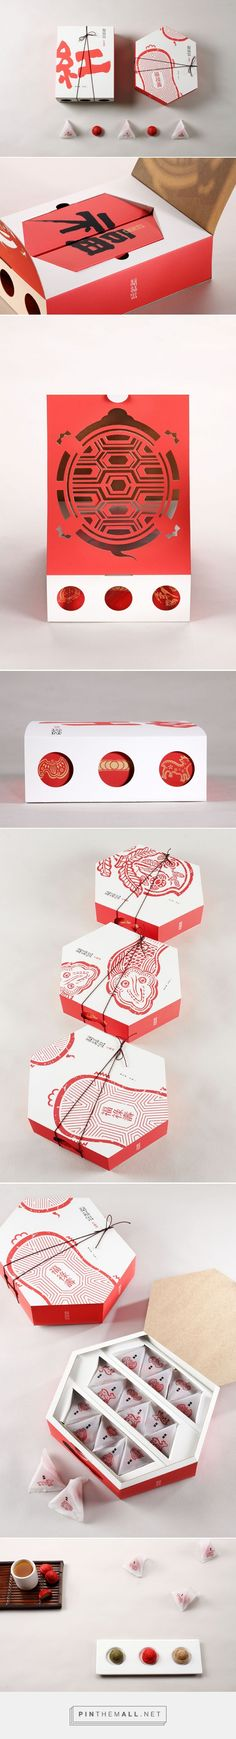 New Bakery packaging design by Liang Wenhua - http://www.packagingoftheworld.com/2017/01/new-bakery-products.html